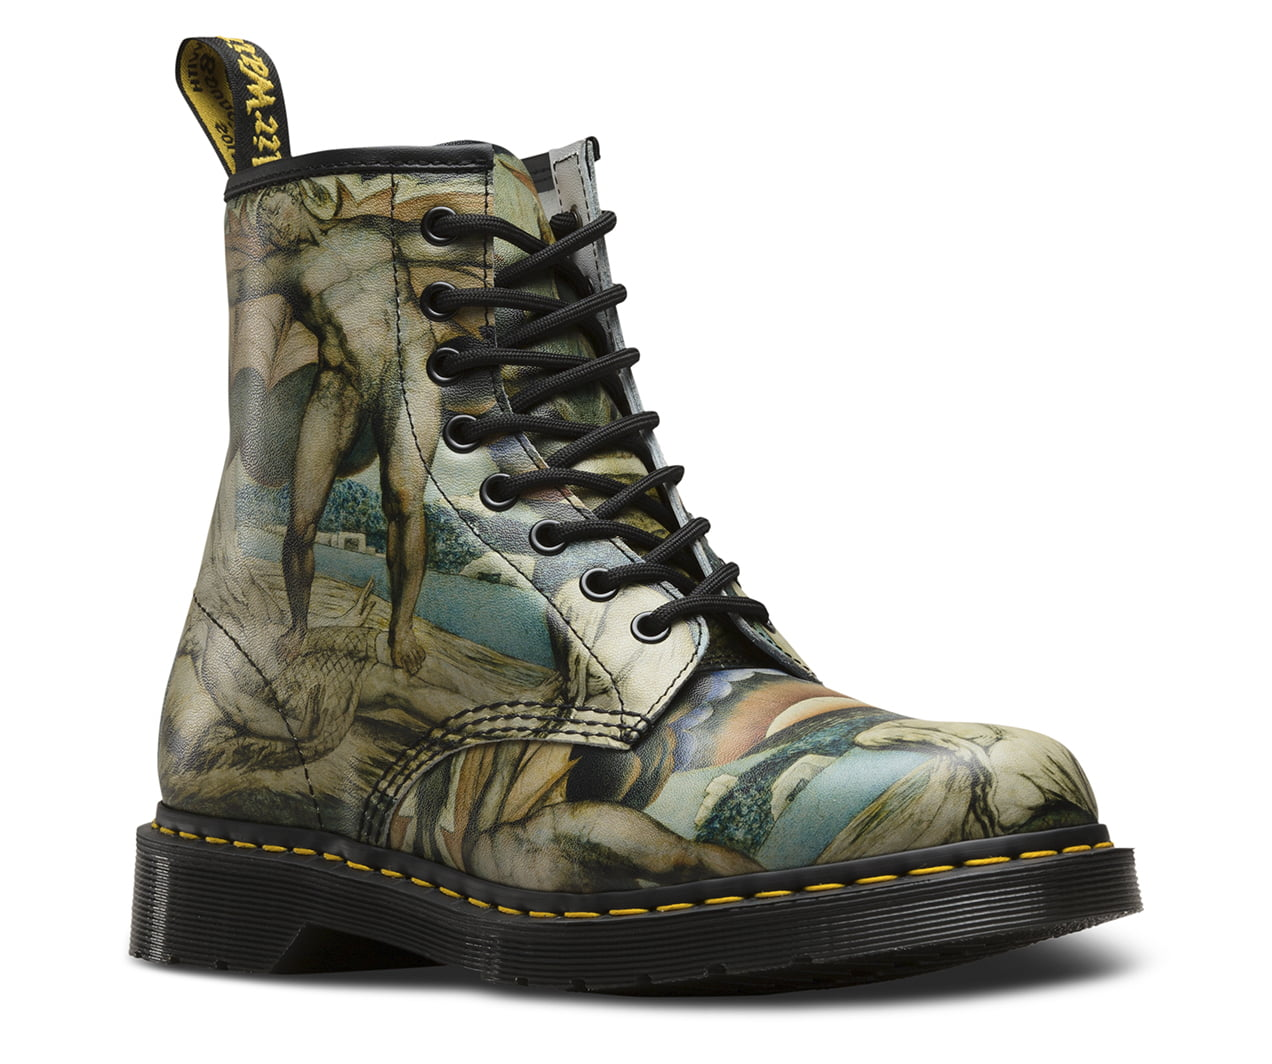 Doc Martens Just Lowed The Price On Their William Blake Boots - That ... 9b846db32346